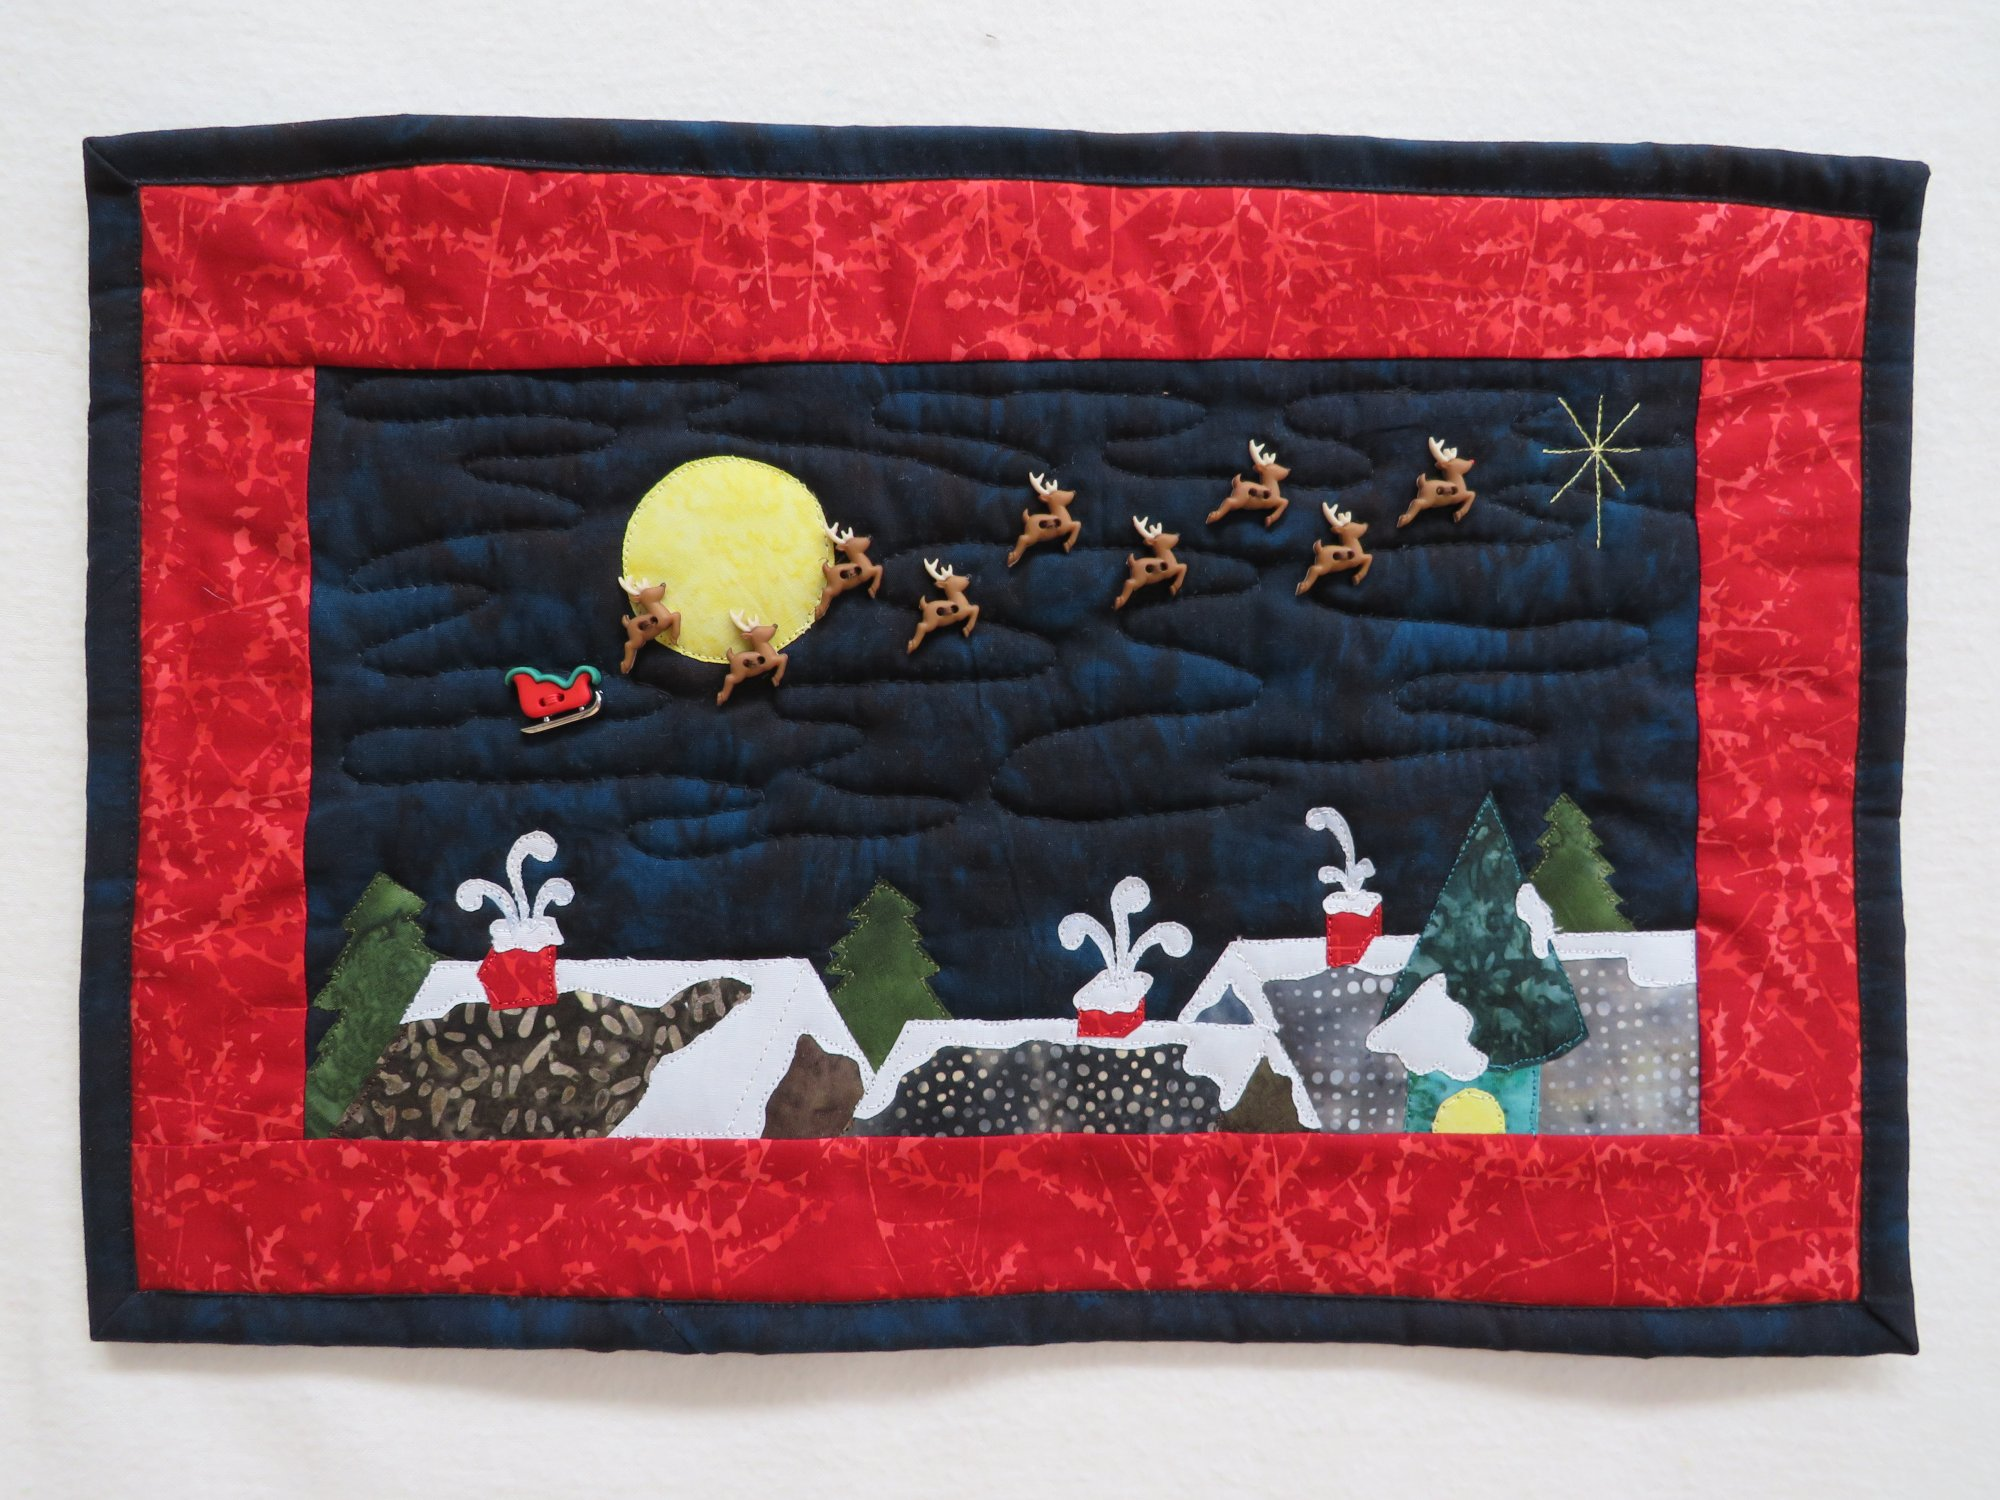 Over the Roof Tops Wall Hanging Kit 16 1/2 x 11 includes Fabric, Sew Cut Sleigh/Reindeer buttons pattern & binding